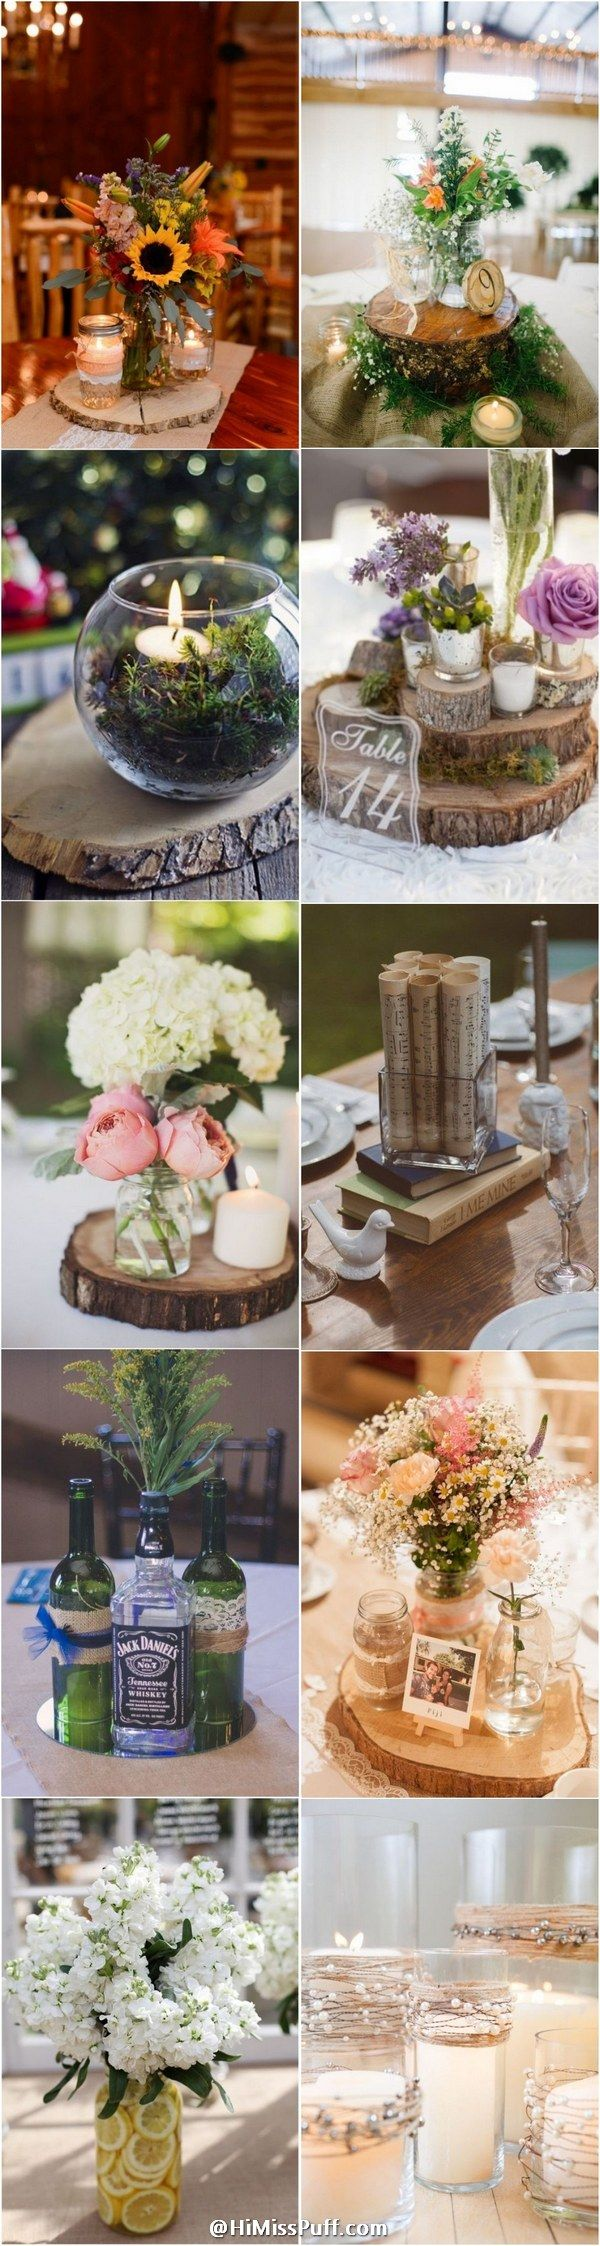 Country Rustic Wedding Centerpiece Ideas / http://www.himisspuff.com/rustic-wedding-centerpiece-ideas/